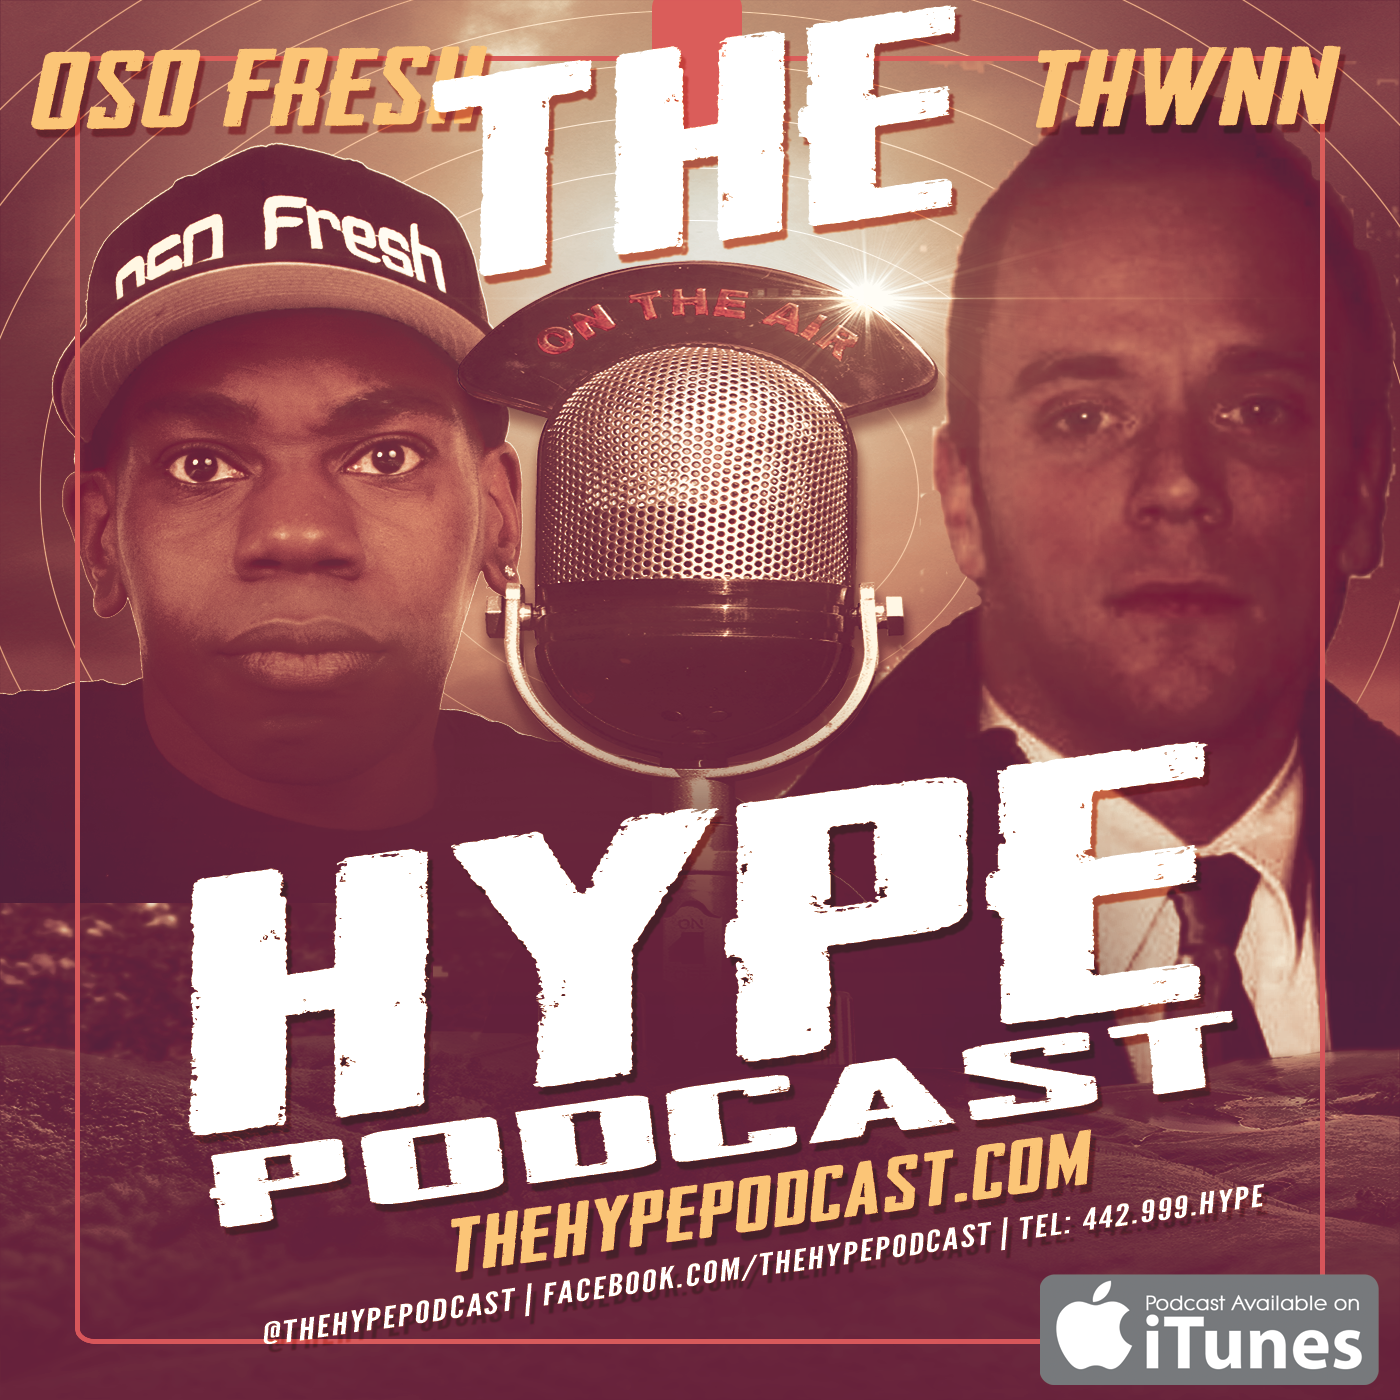 Artwork for the hype podcast episode 125 See you next black tuesday